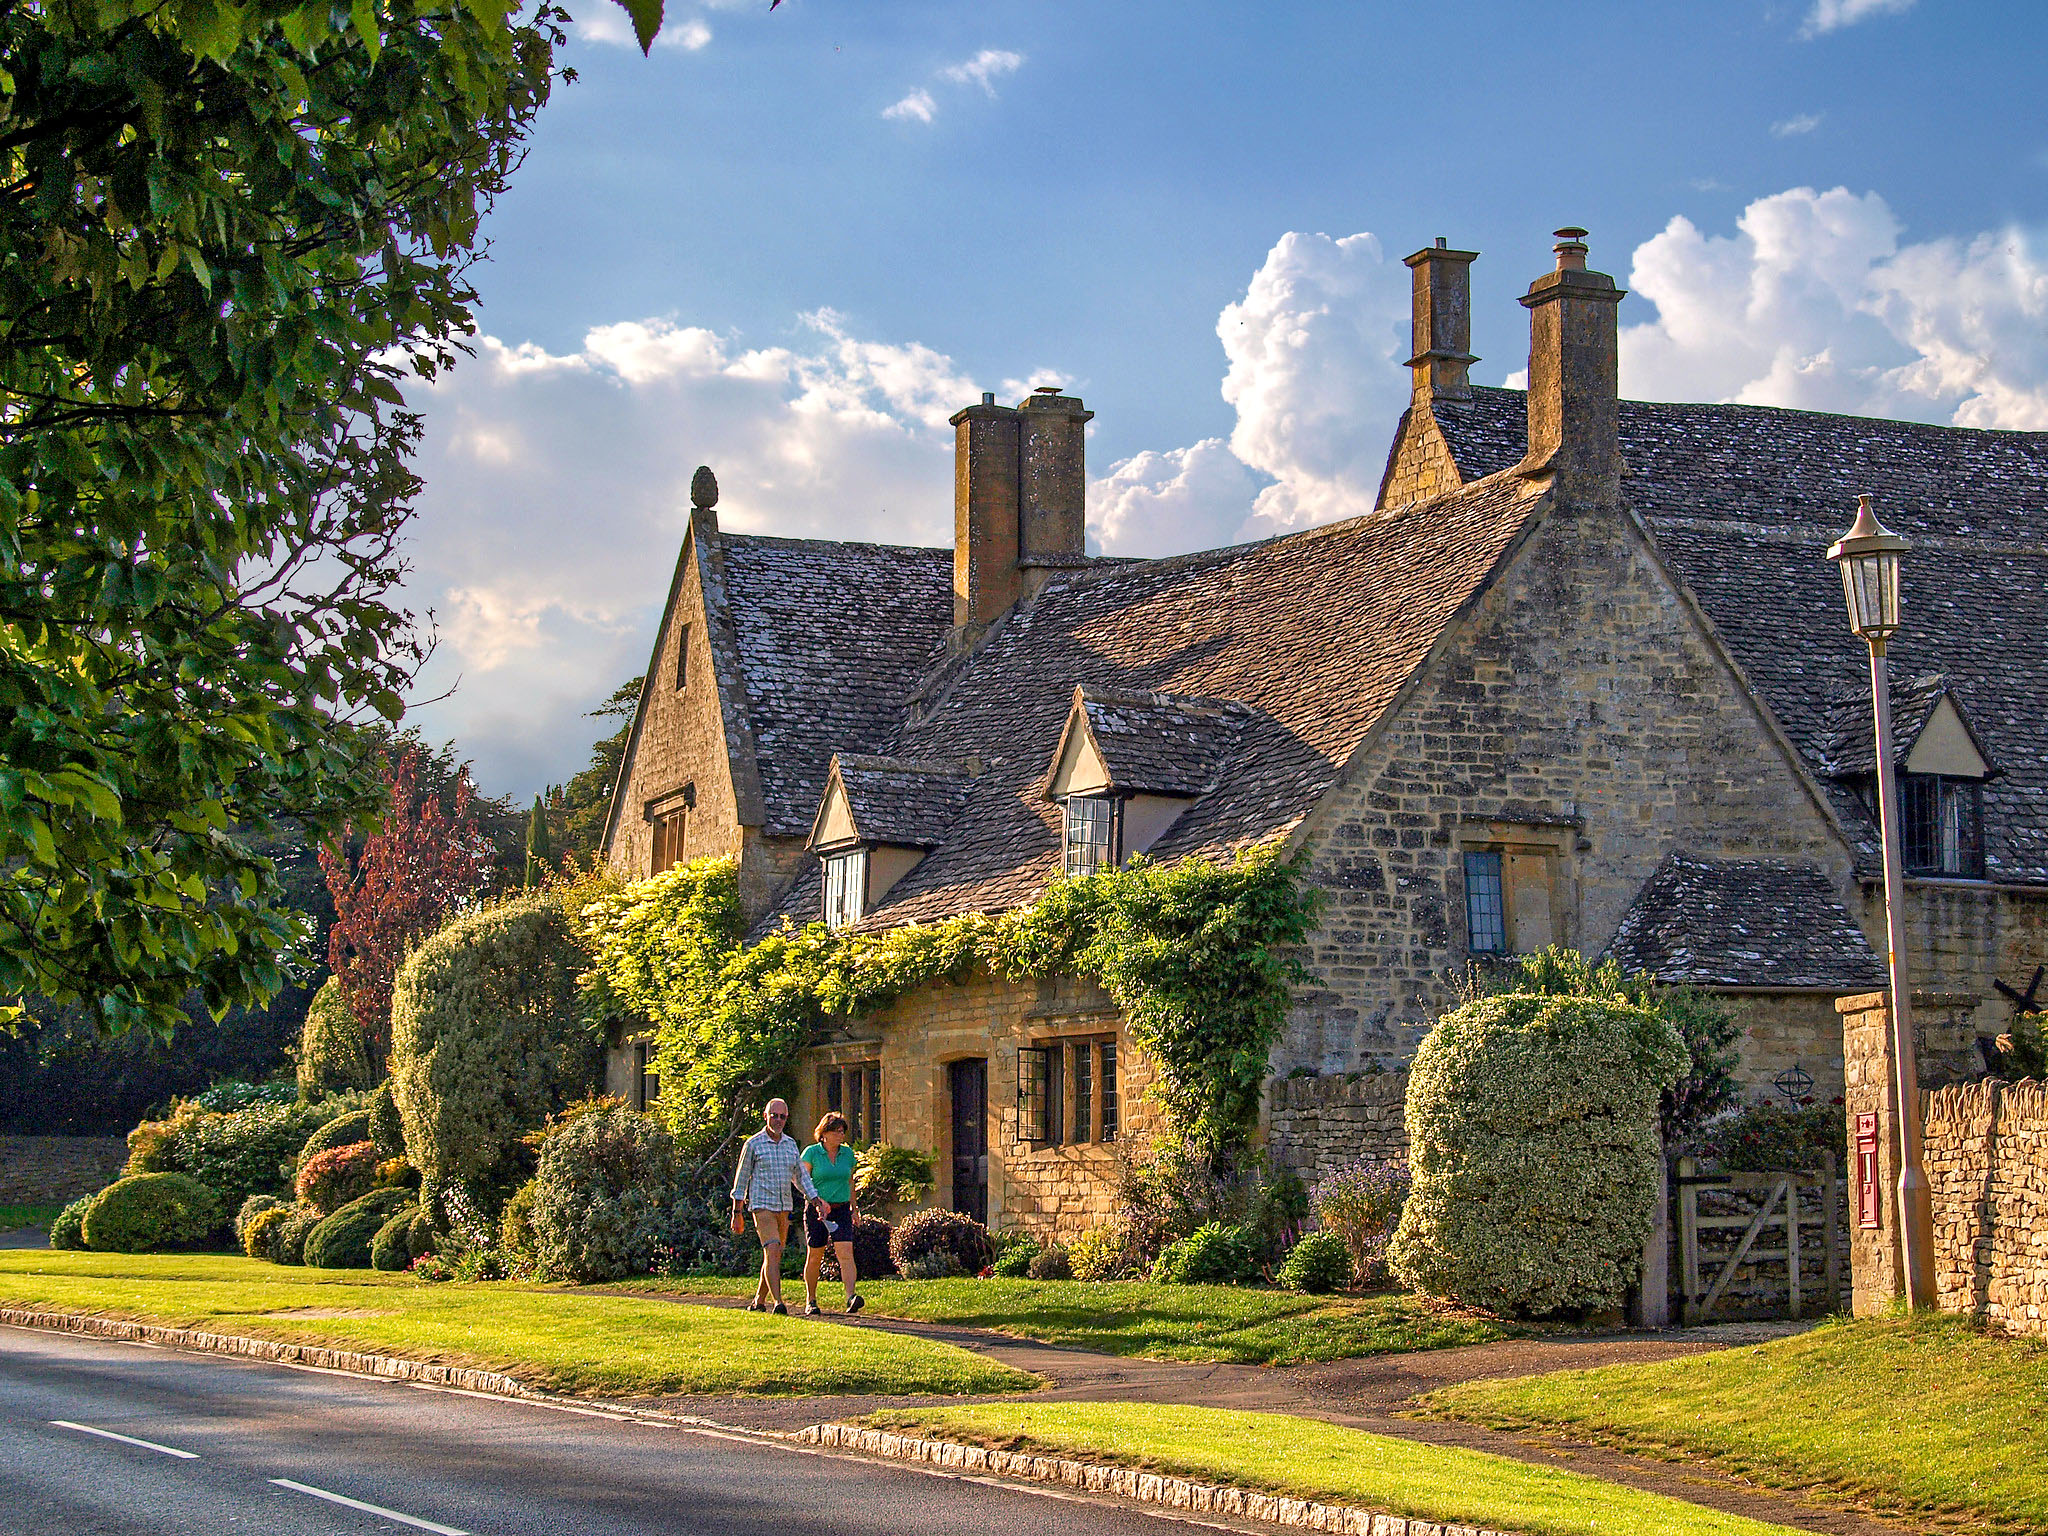 Westington, Chipping Campden, Gloucestershire by Andrew S Brown.jpg